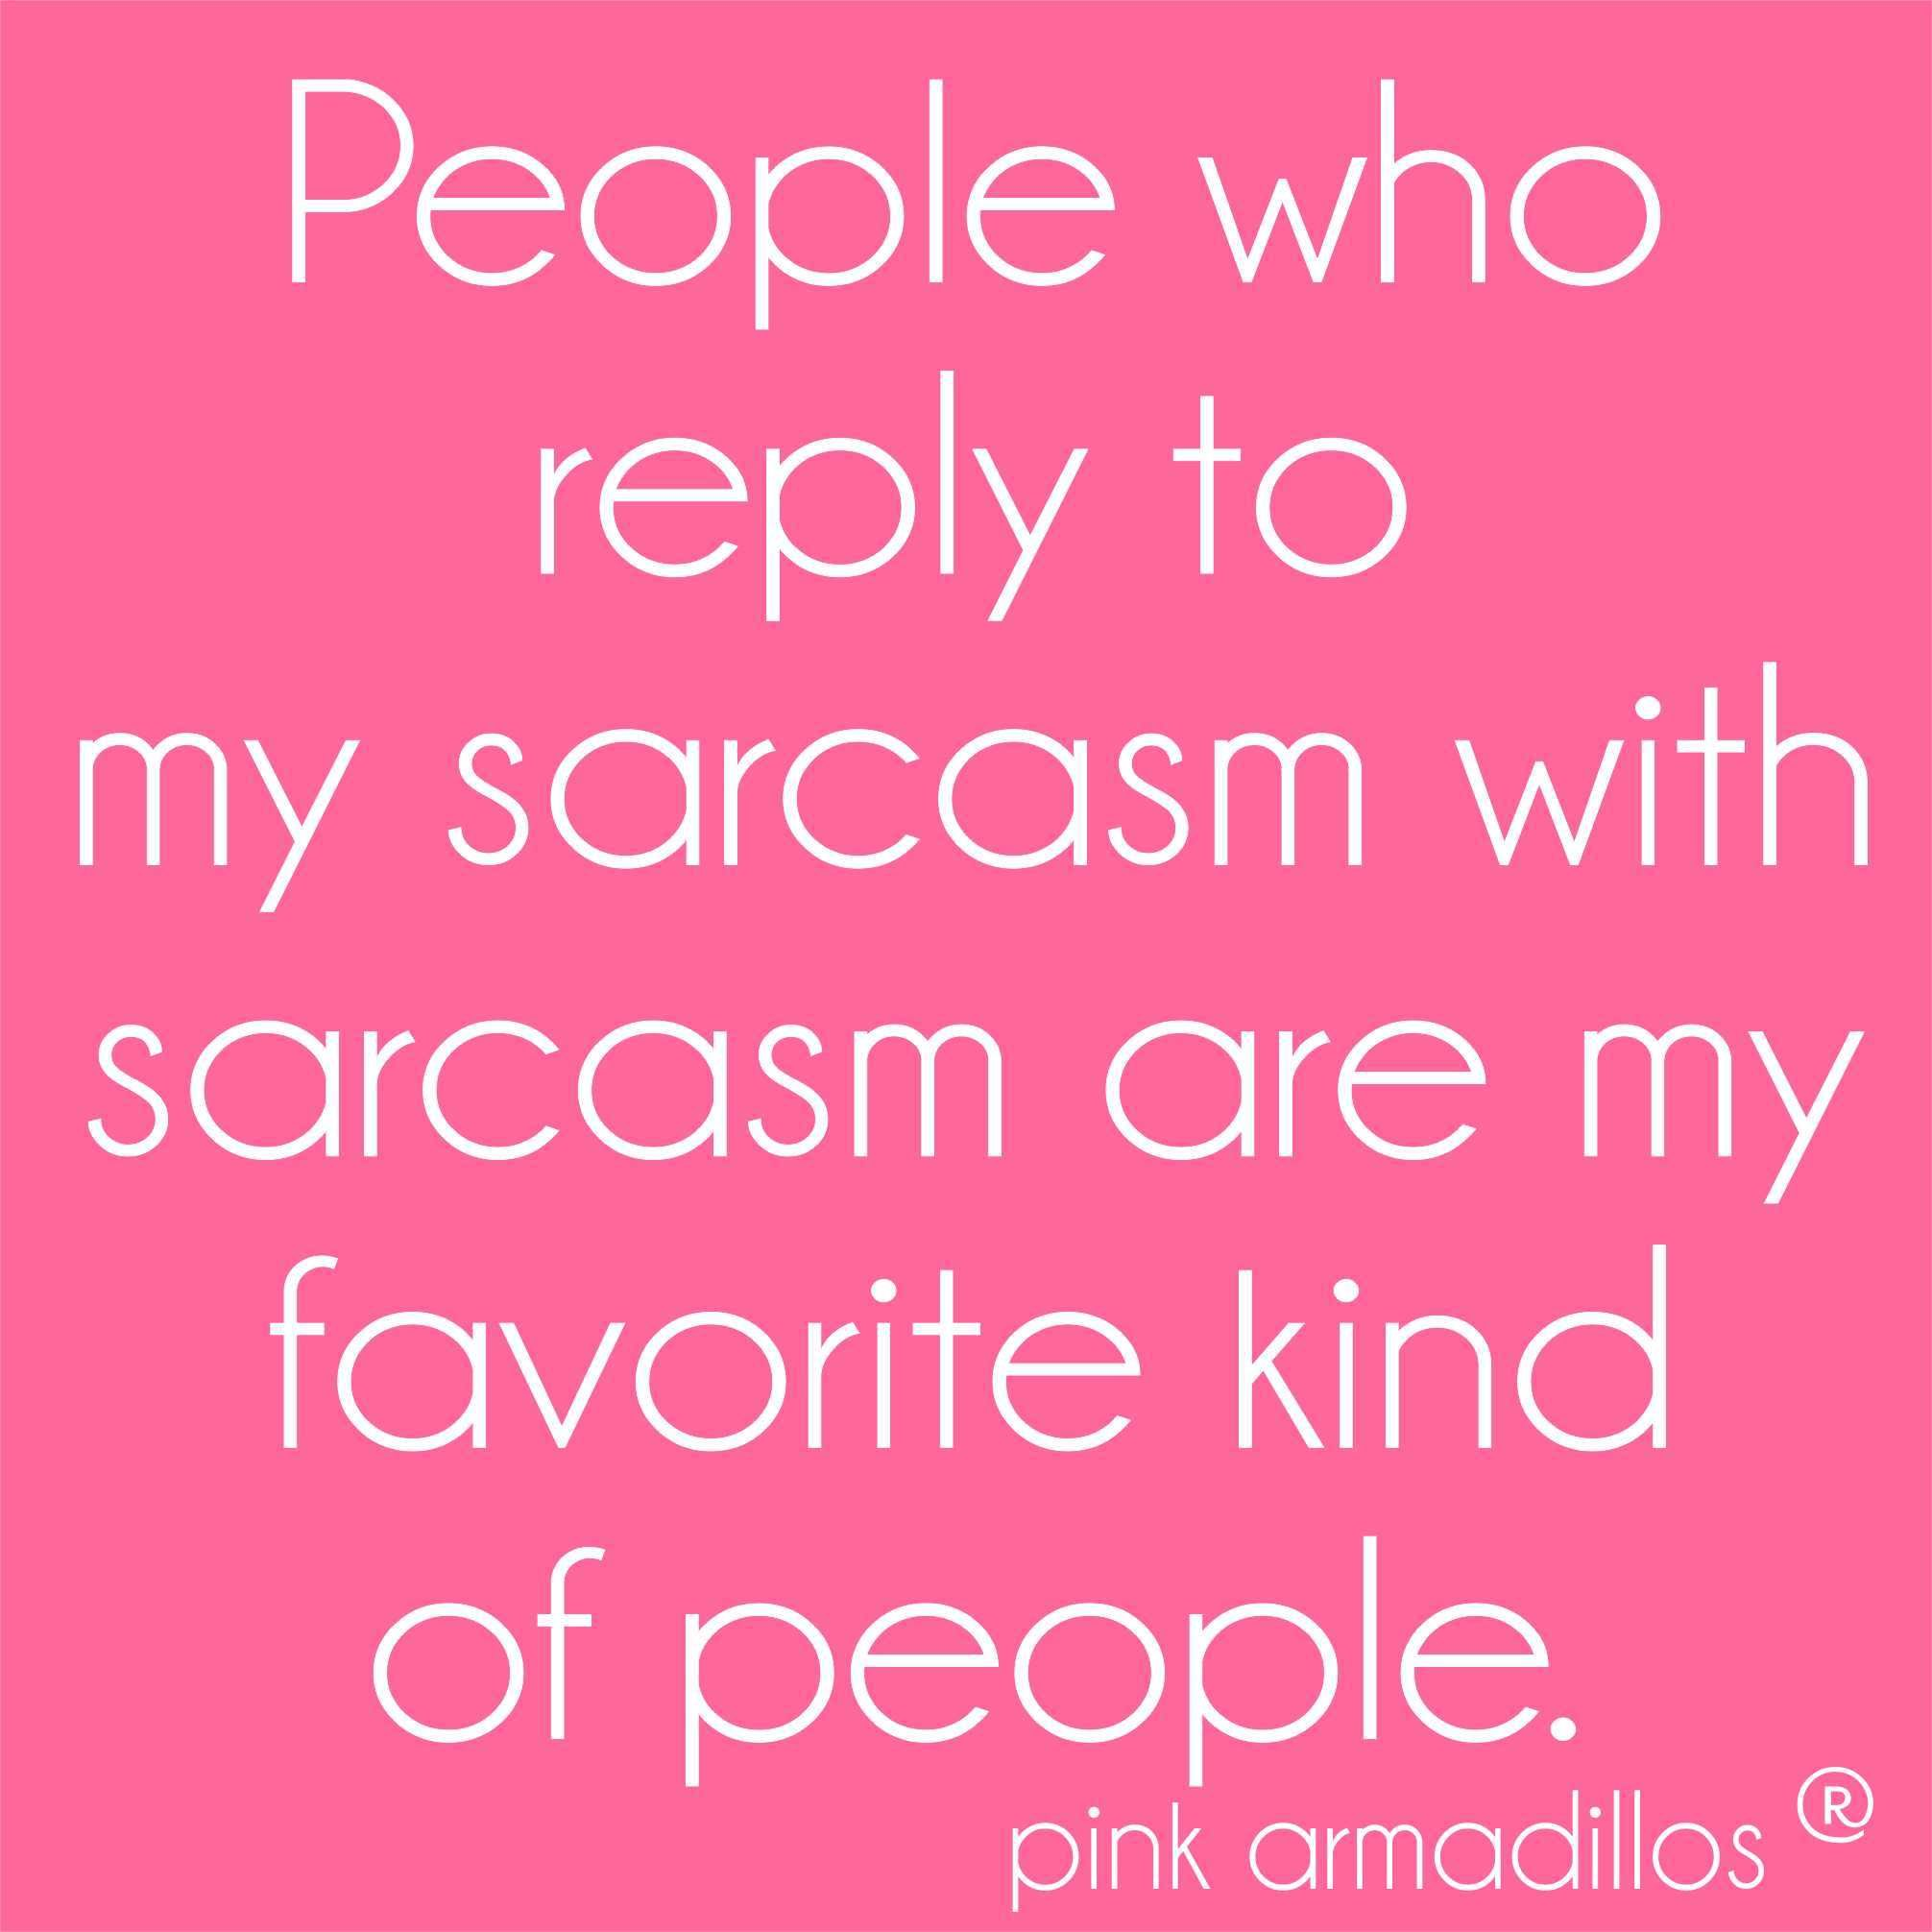 Sarcastic People Are The Best Sarcasm Funny Favoritepeople Spring Funnyquotes Pinkarmadillos Sarcastic People Funny Quotes For Teens Sarcastic Quotes